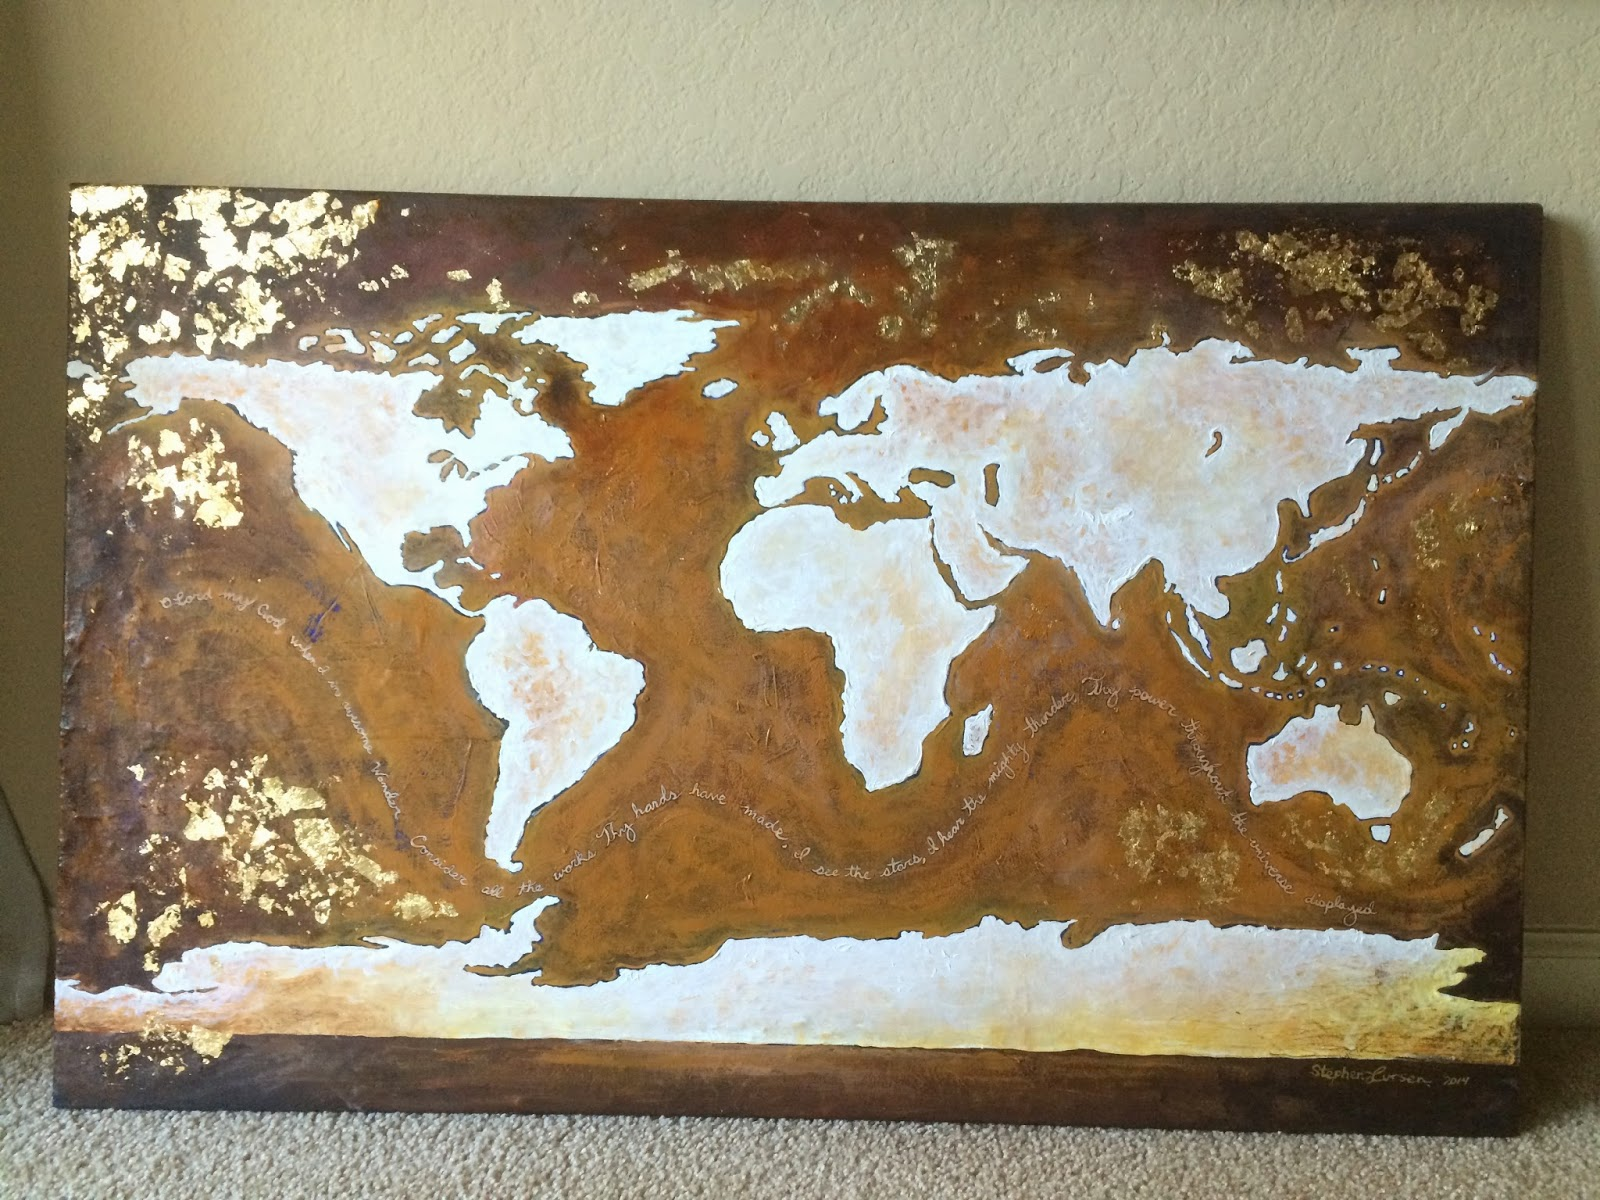 Stephen lursen art january 2015 custom world map with gold leaf sold gumiabroncs Gallery